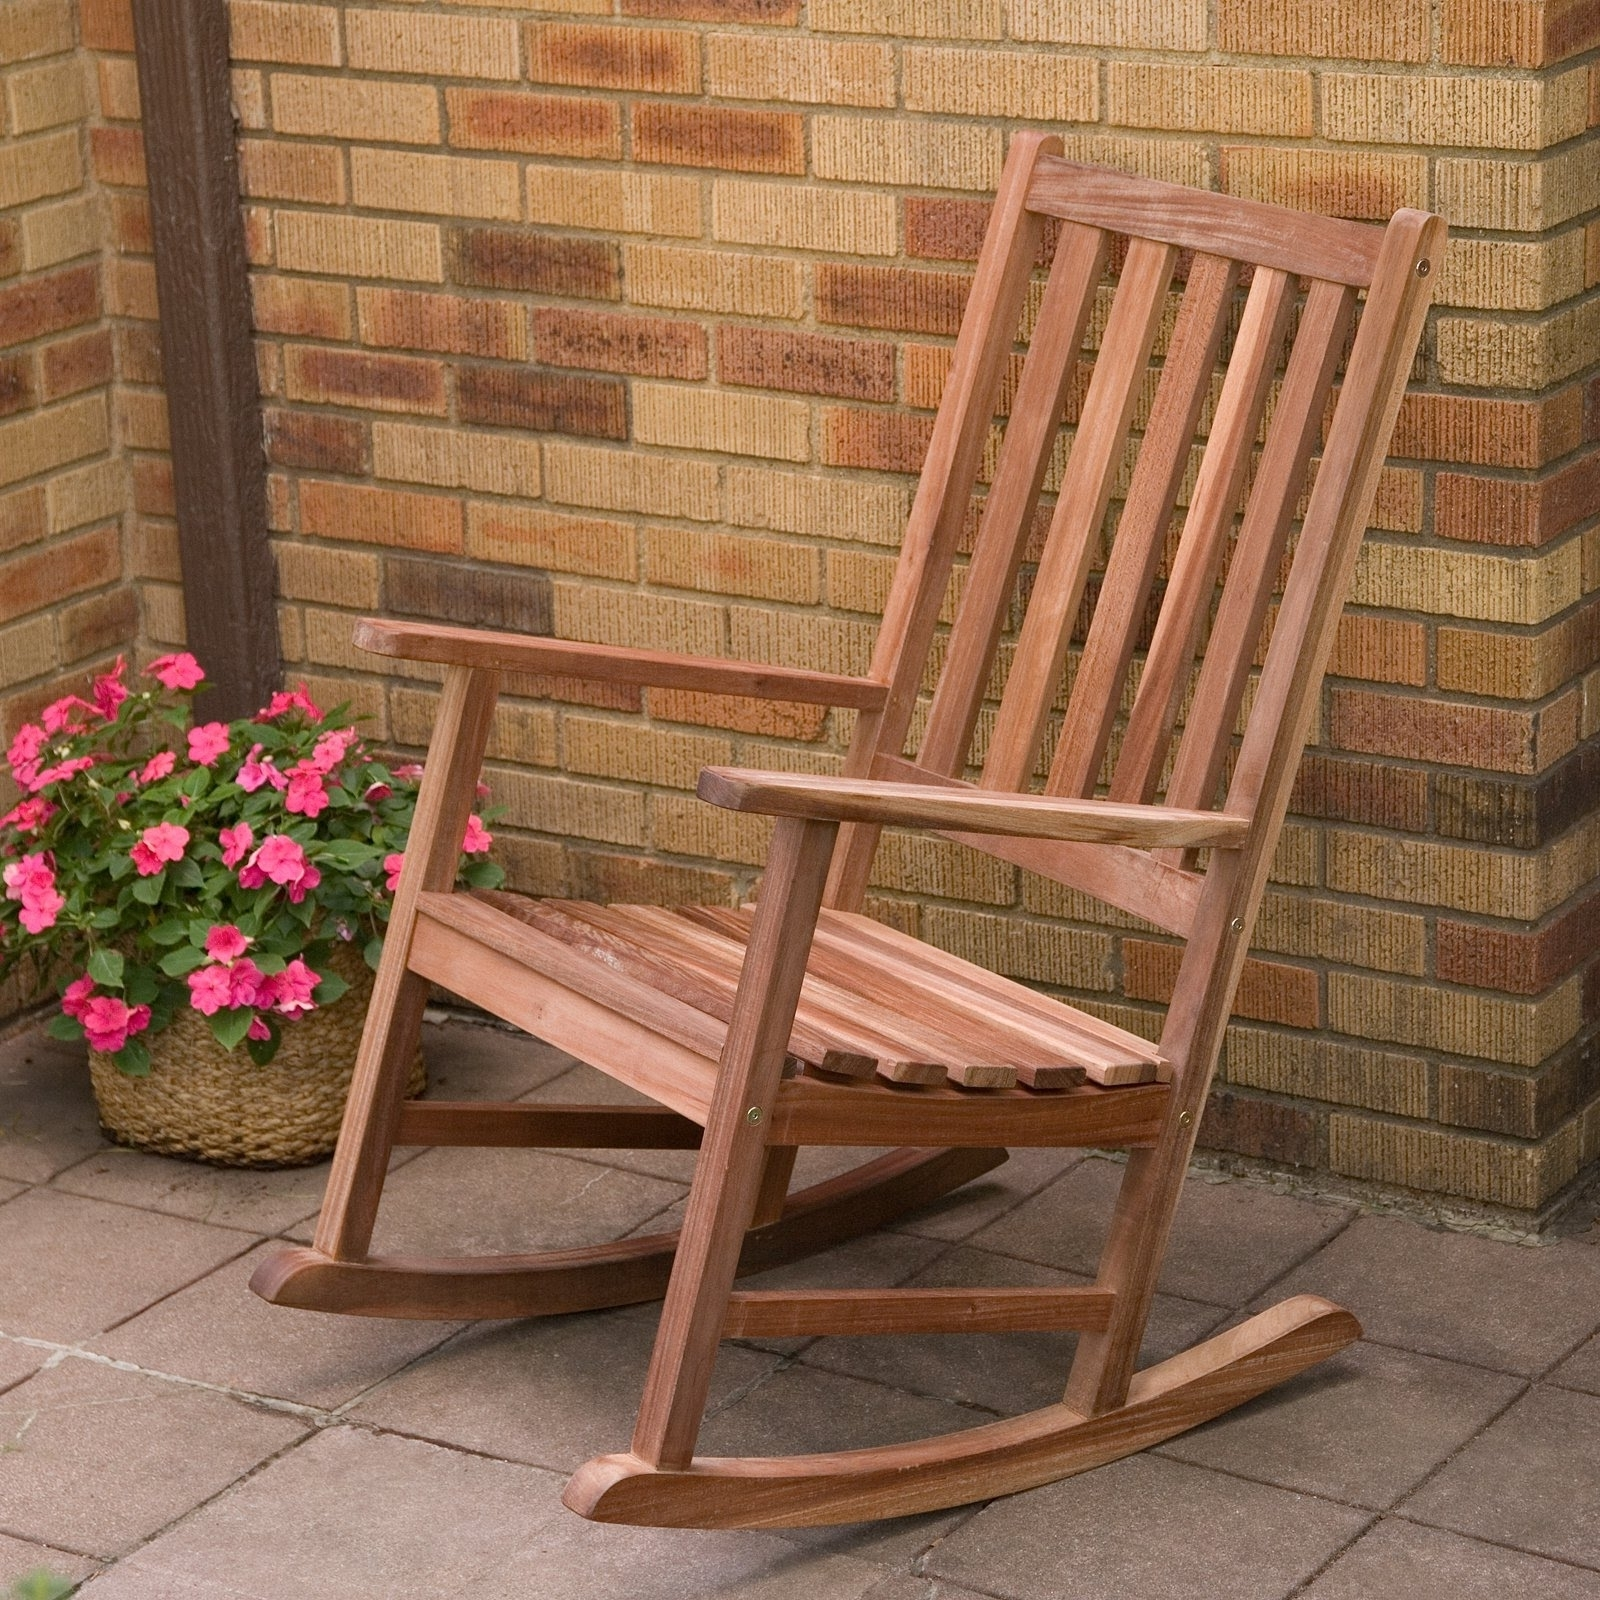 Retro Outdoor Rocking Chairs Pertaining To Most Popular Patio & Garden : Eucalyptus Outdoor Rocking Chair Espresso Outdoor (View 17 of 20)